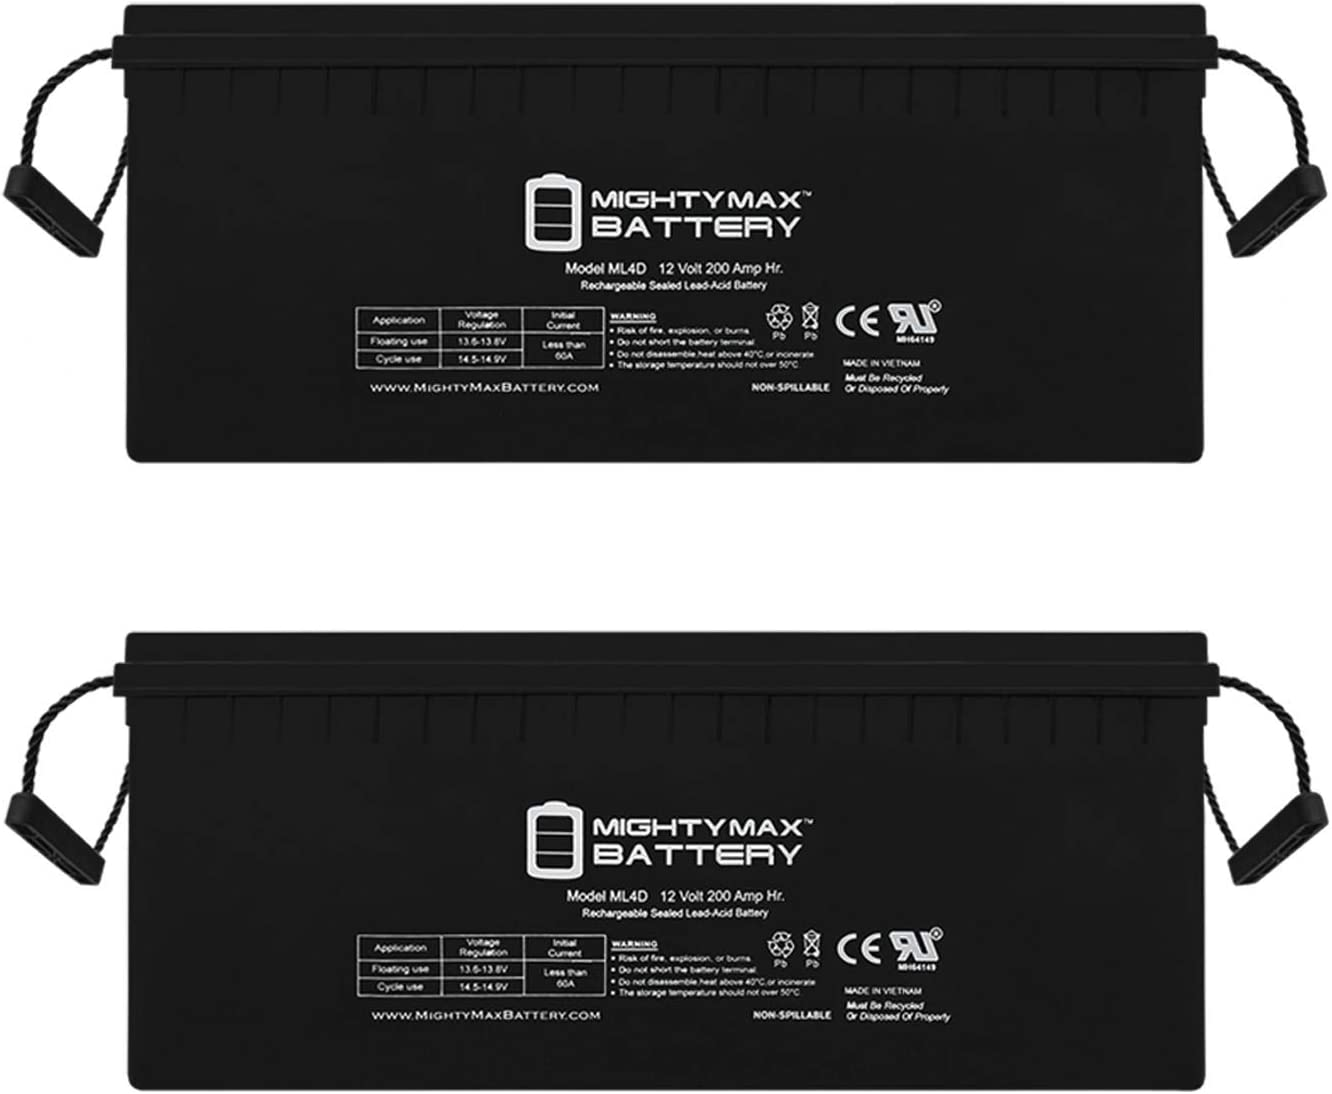 Mighty Max Reservation Battery Sealed Lead-Acid Shipping included 12V AGM-Type - 200